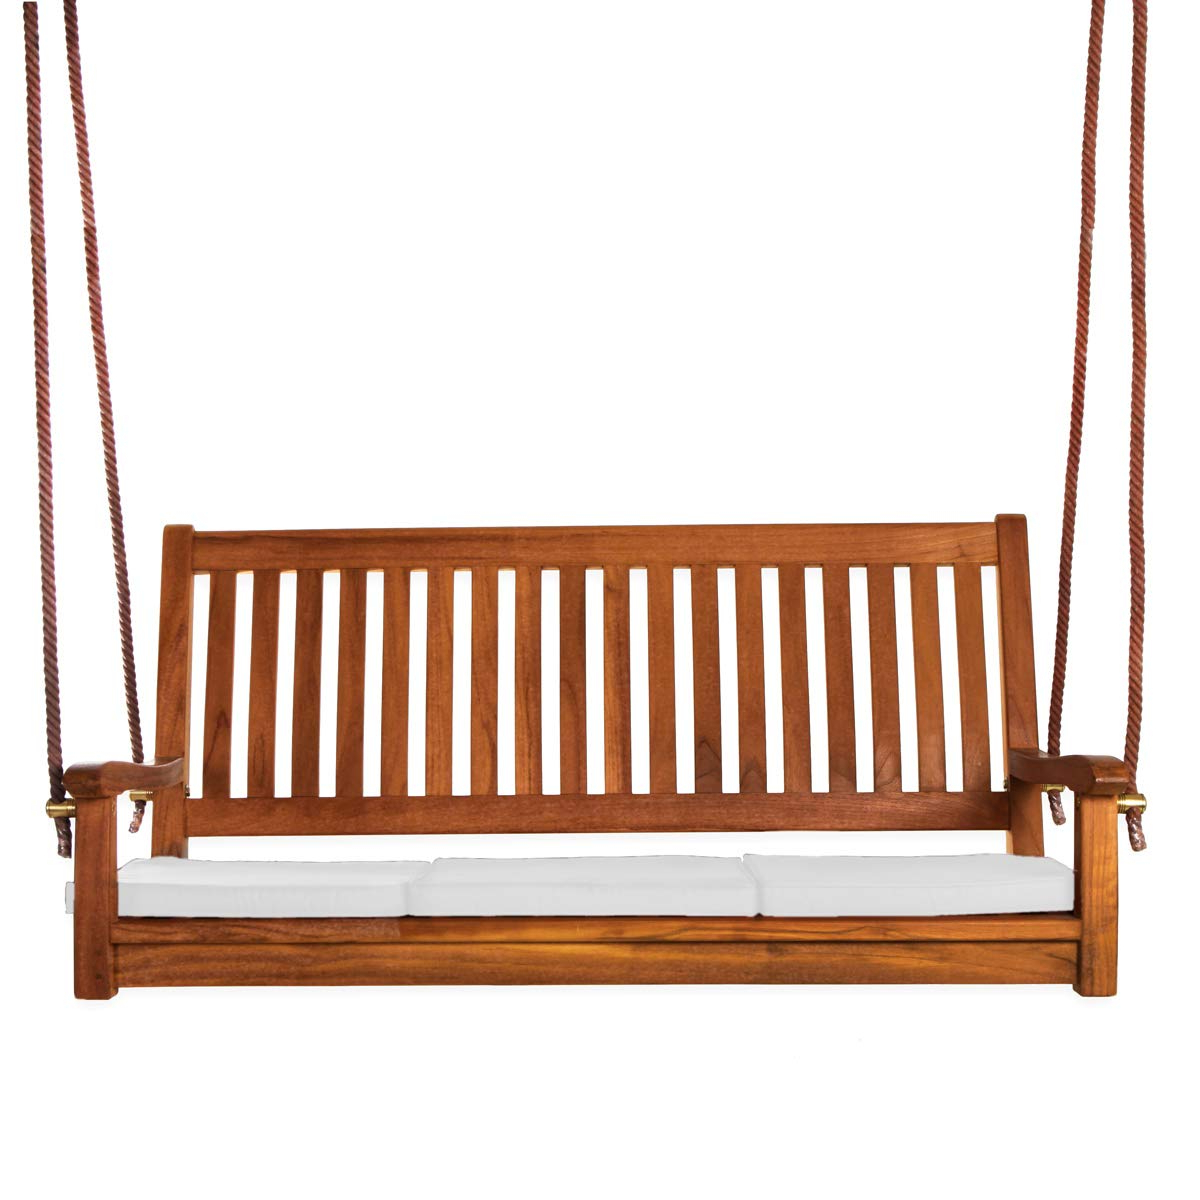 Best And Newest All Things Cedar Ts50 W Teak Porch Swing With Cushions, White For Teak Porch Swings (View 7 of 30)